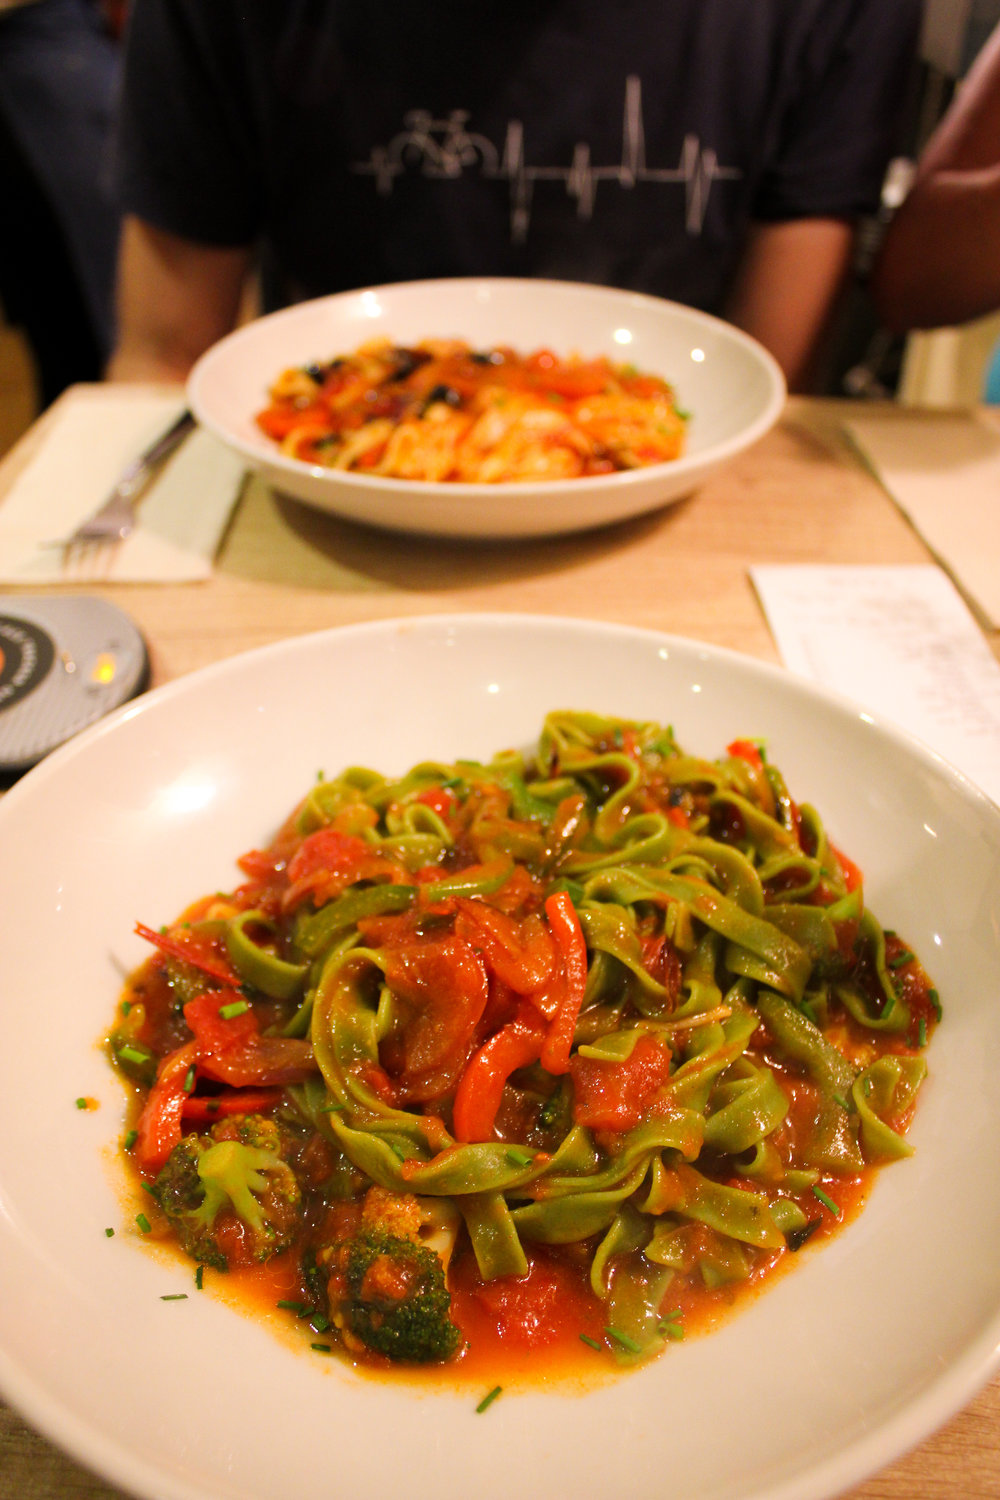 spinach linguine with pomodoro sauce and a variety of veggies from Pasta Market